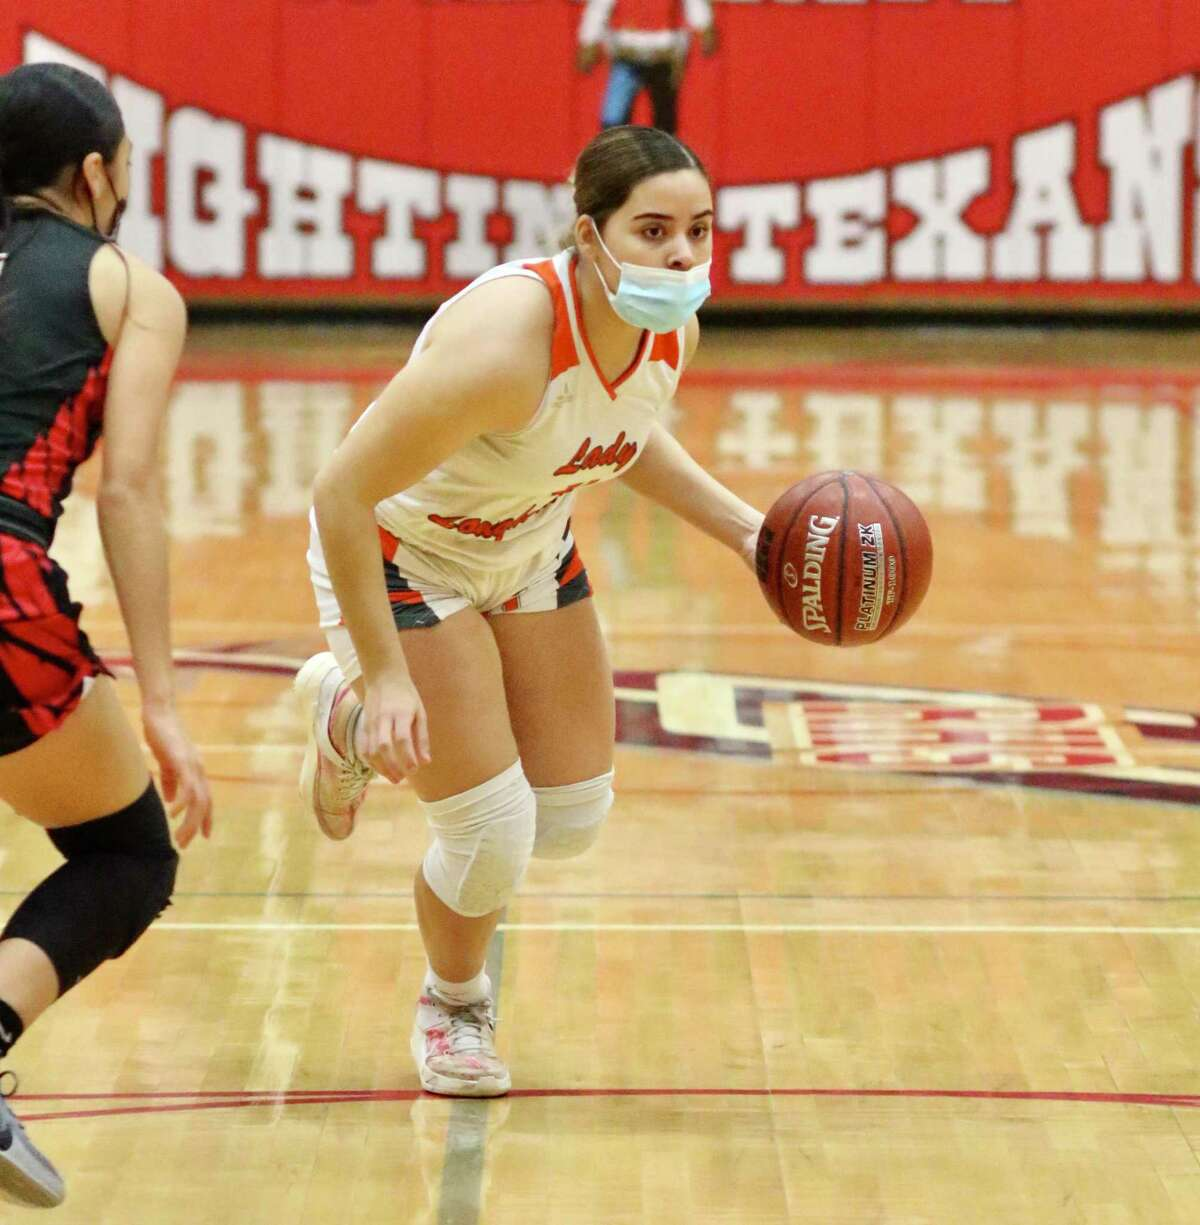 Evelyn Quiroz scored 18 points in her final game for United on Wednesday as the Lady Longhorns were eliminated with a 77-71 overtime loss to San Antonio Stevens.